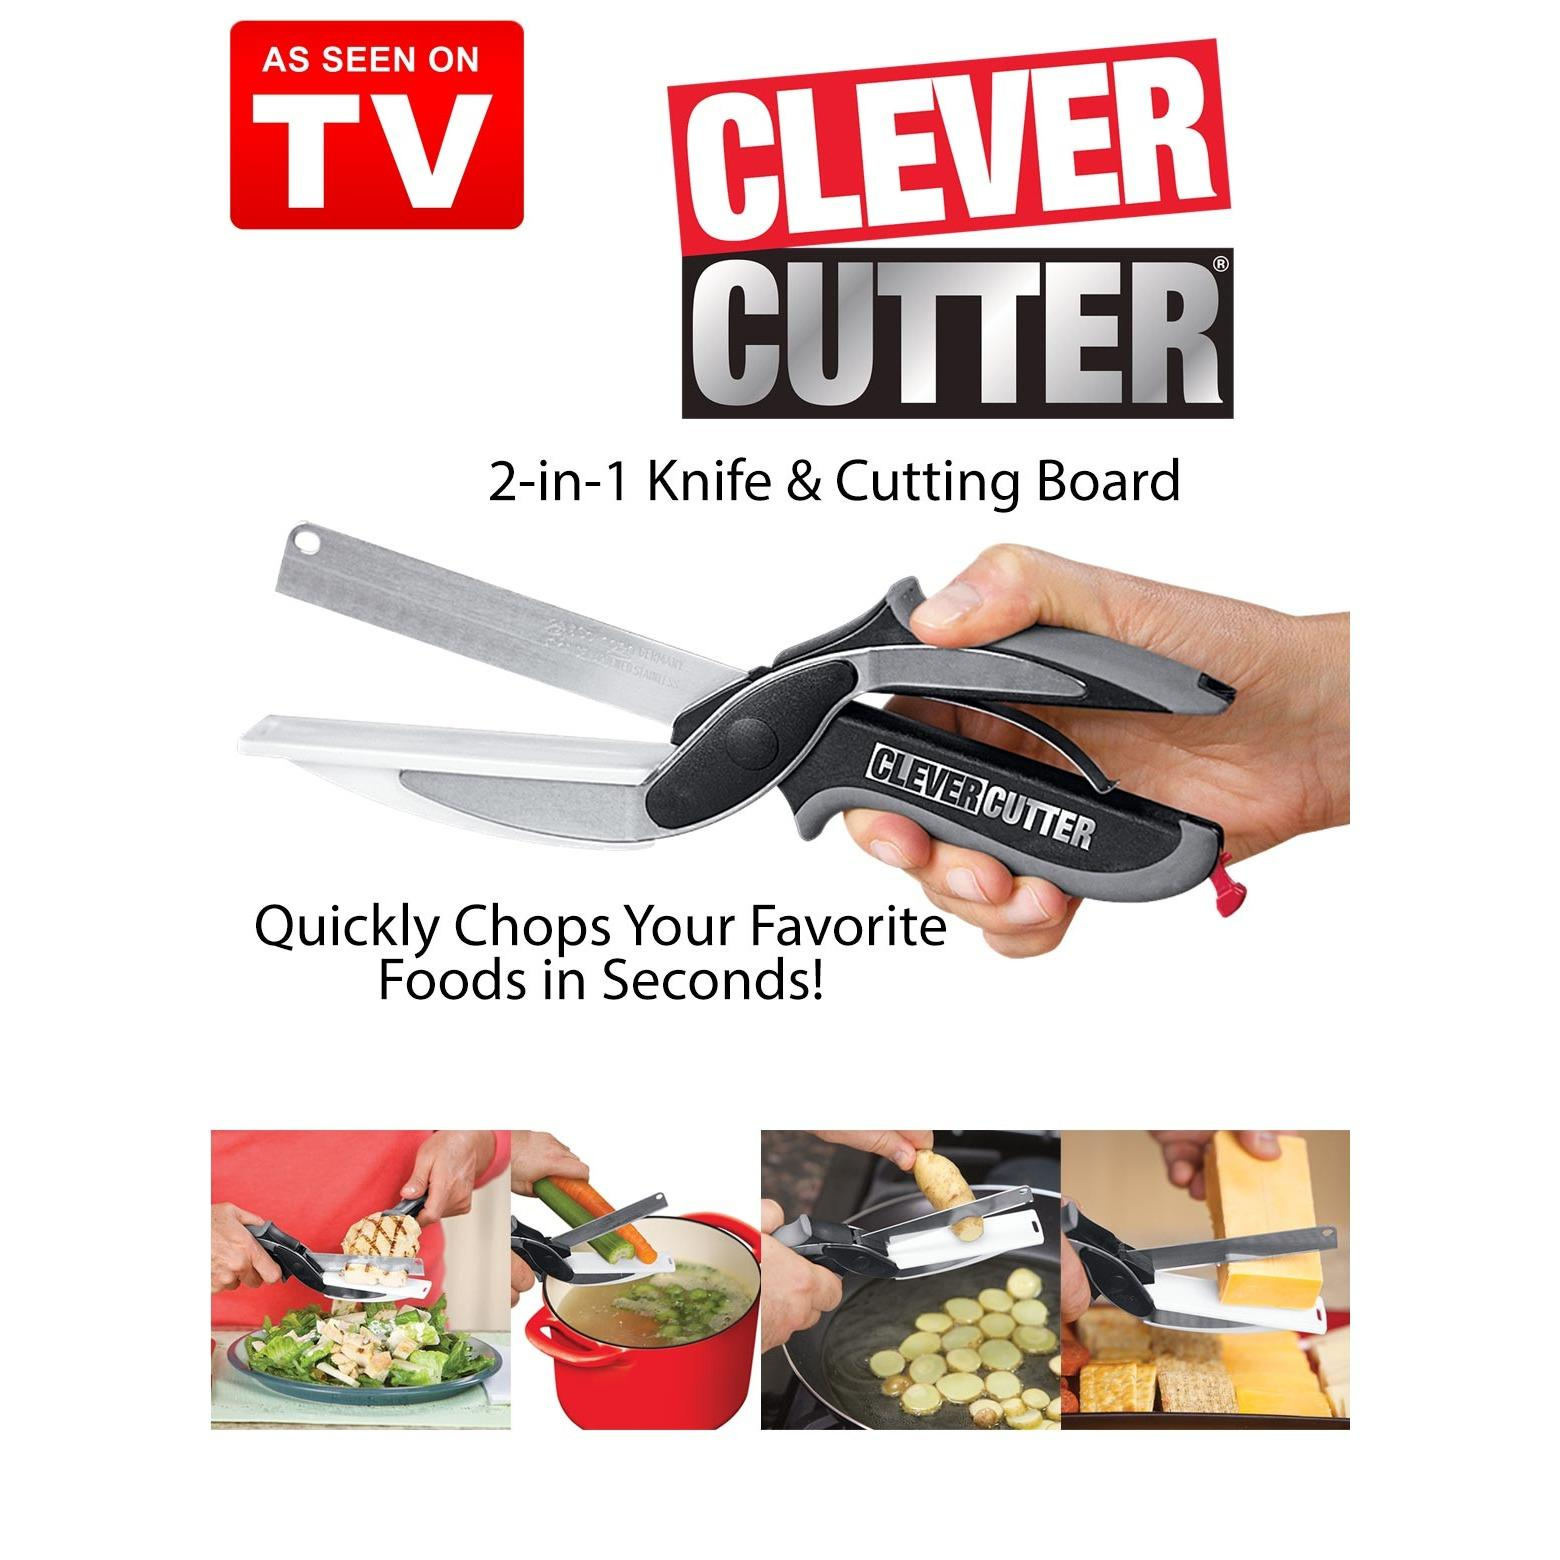 Harga 2015 New Kitchen Pressing Vegetable Onion Garlic Chopper Easy Cacah Bawang Praktis Pencacah Unik Sayur Sayuran Food 2 In 1 Knife Cutting Board Scissors Cutter Tools